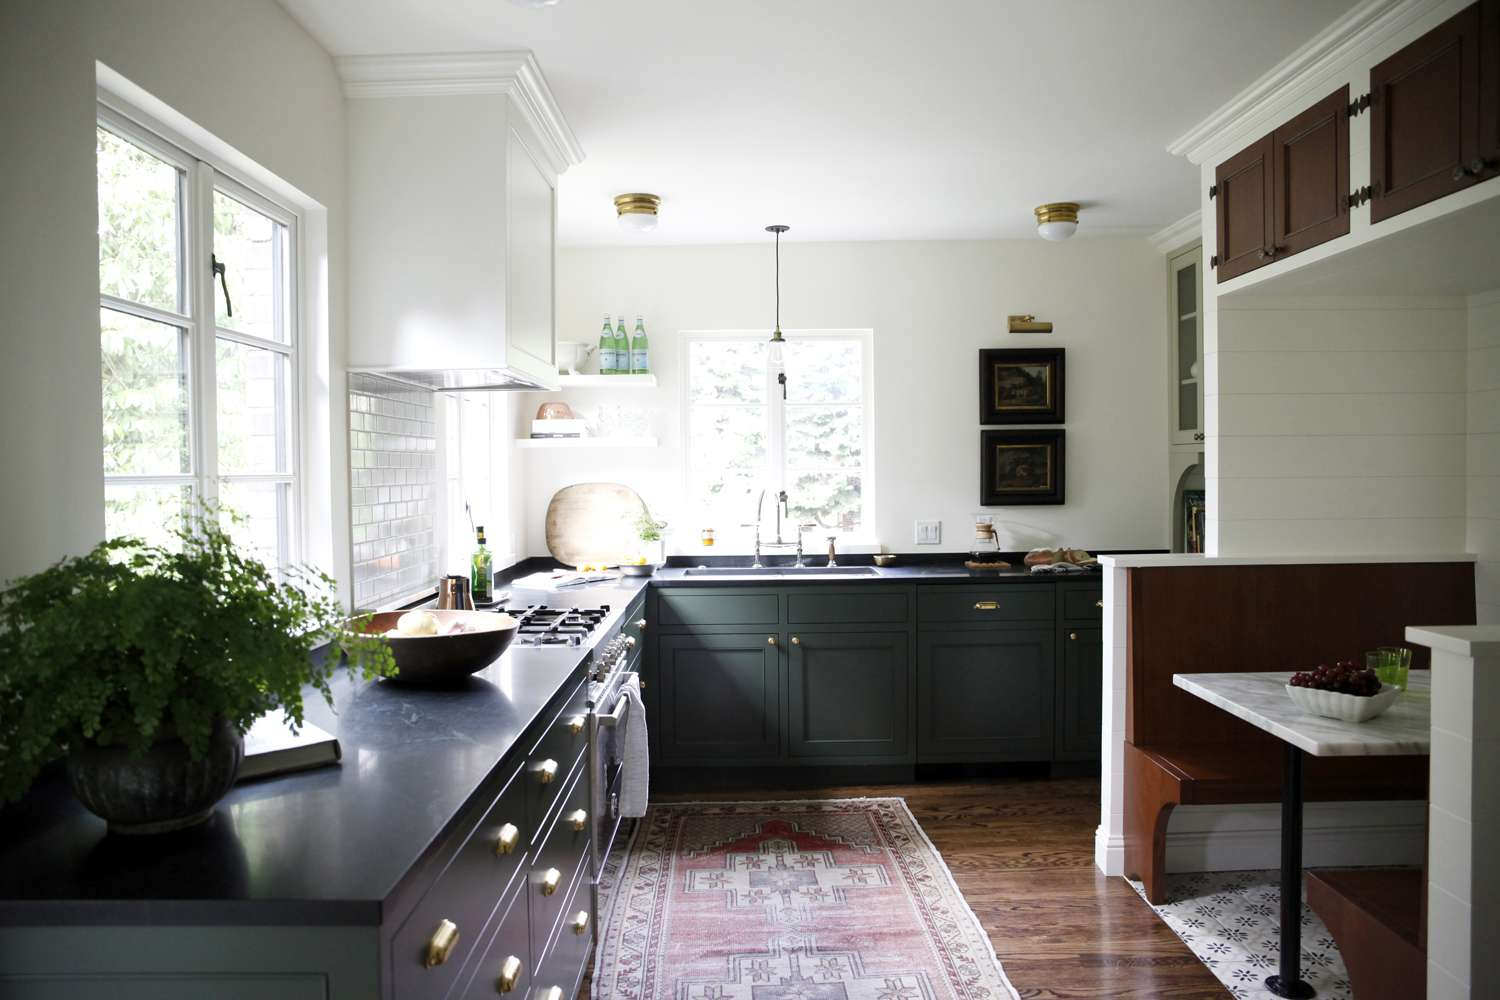 An open-concept kitchen with a dining booth in it